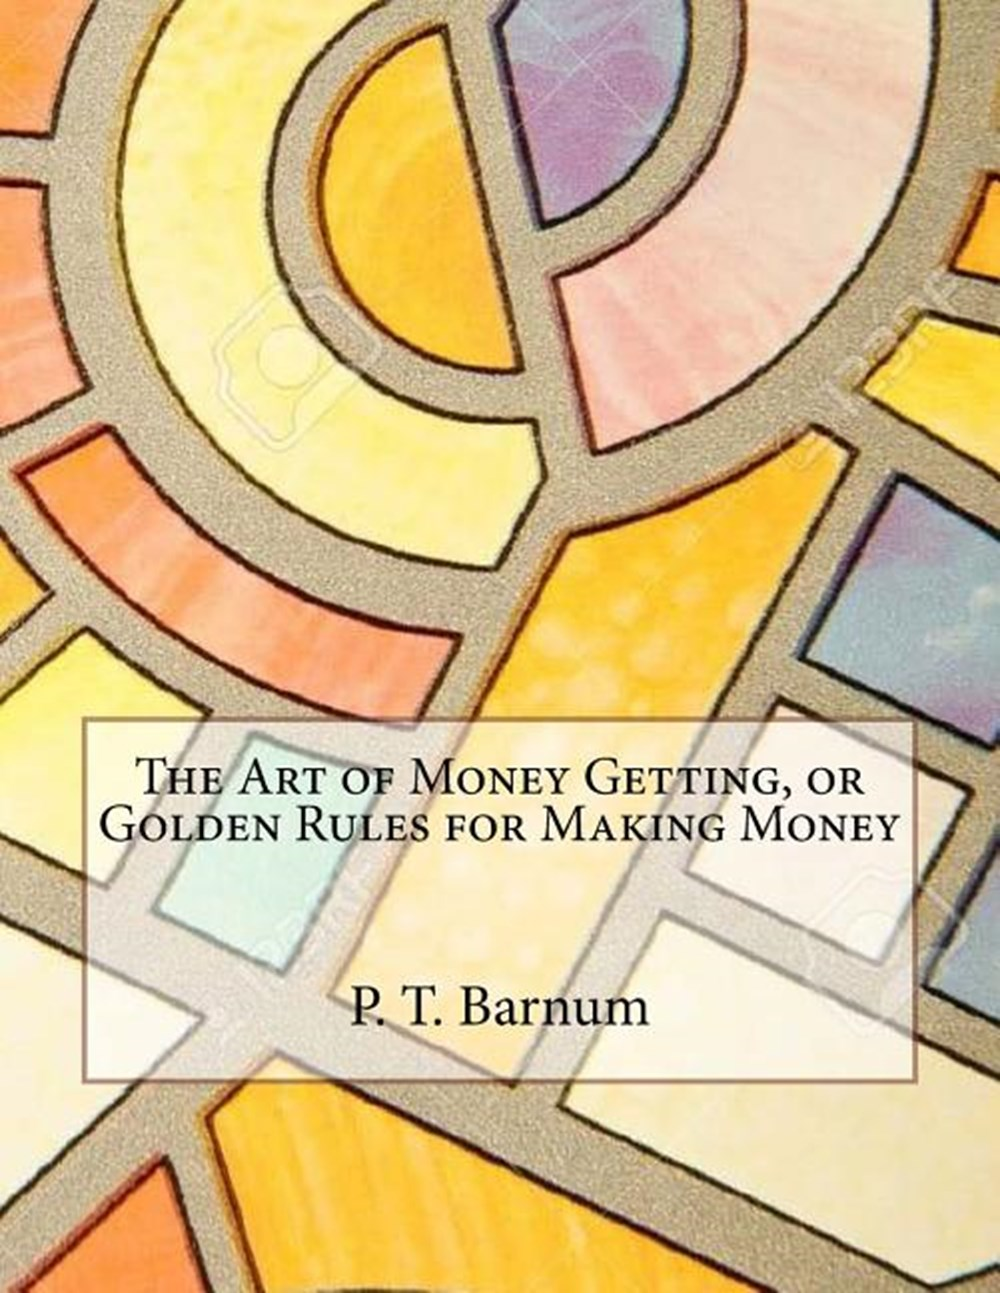 Art of Money Getting, or Golden Rules for Making Money